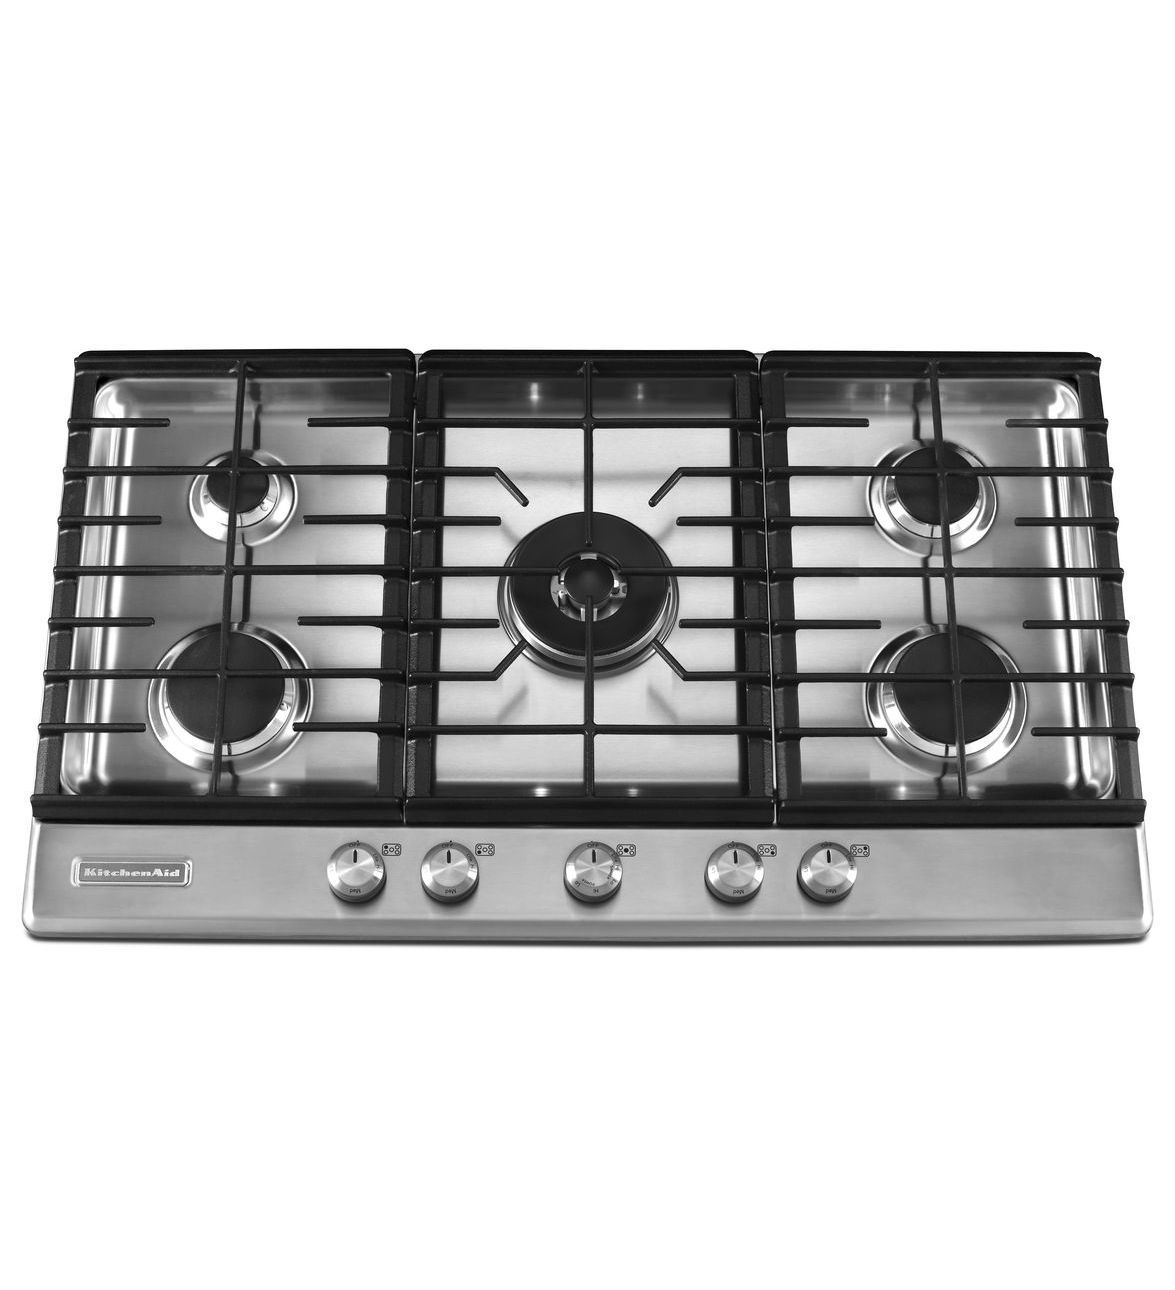 KitchenAid® 36 Inch 5 Burner Gas Cooktop, Architect® Series II (KFGS366VSS  Stainless Steel) |